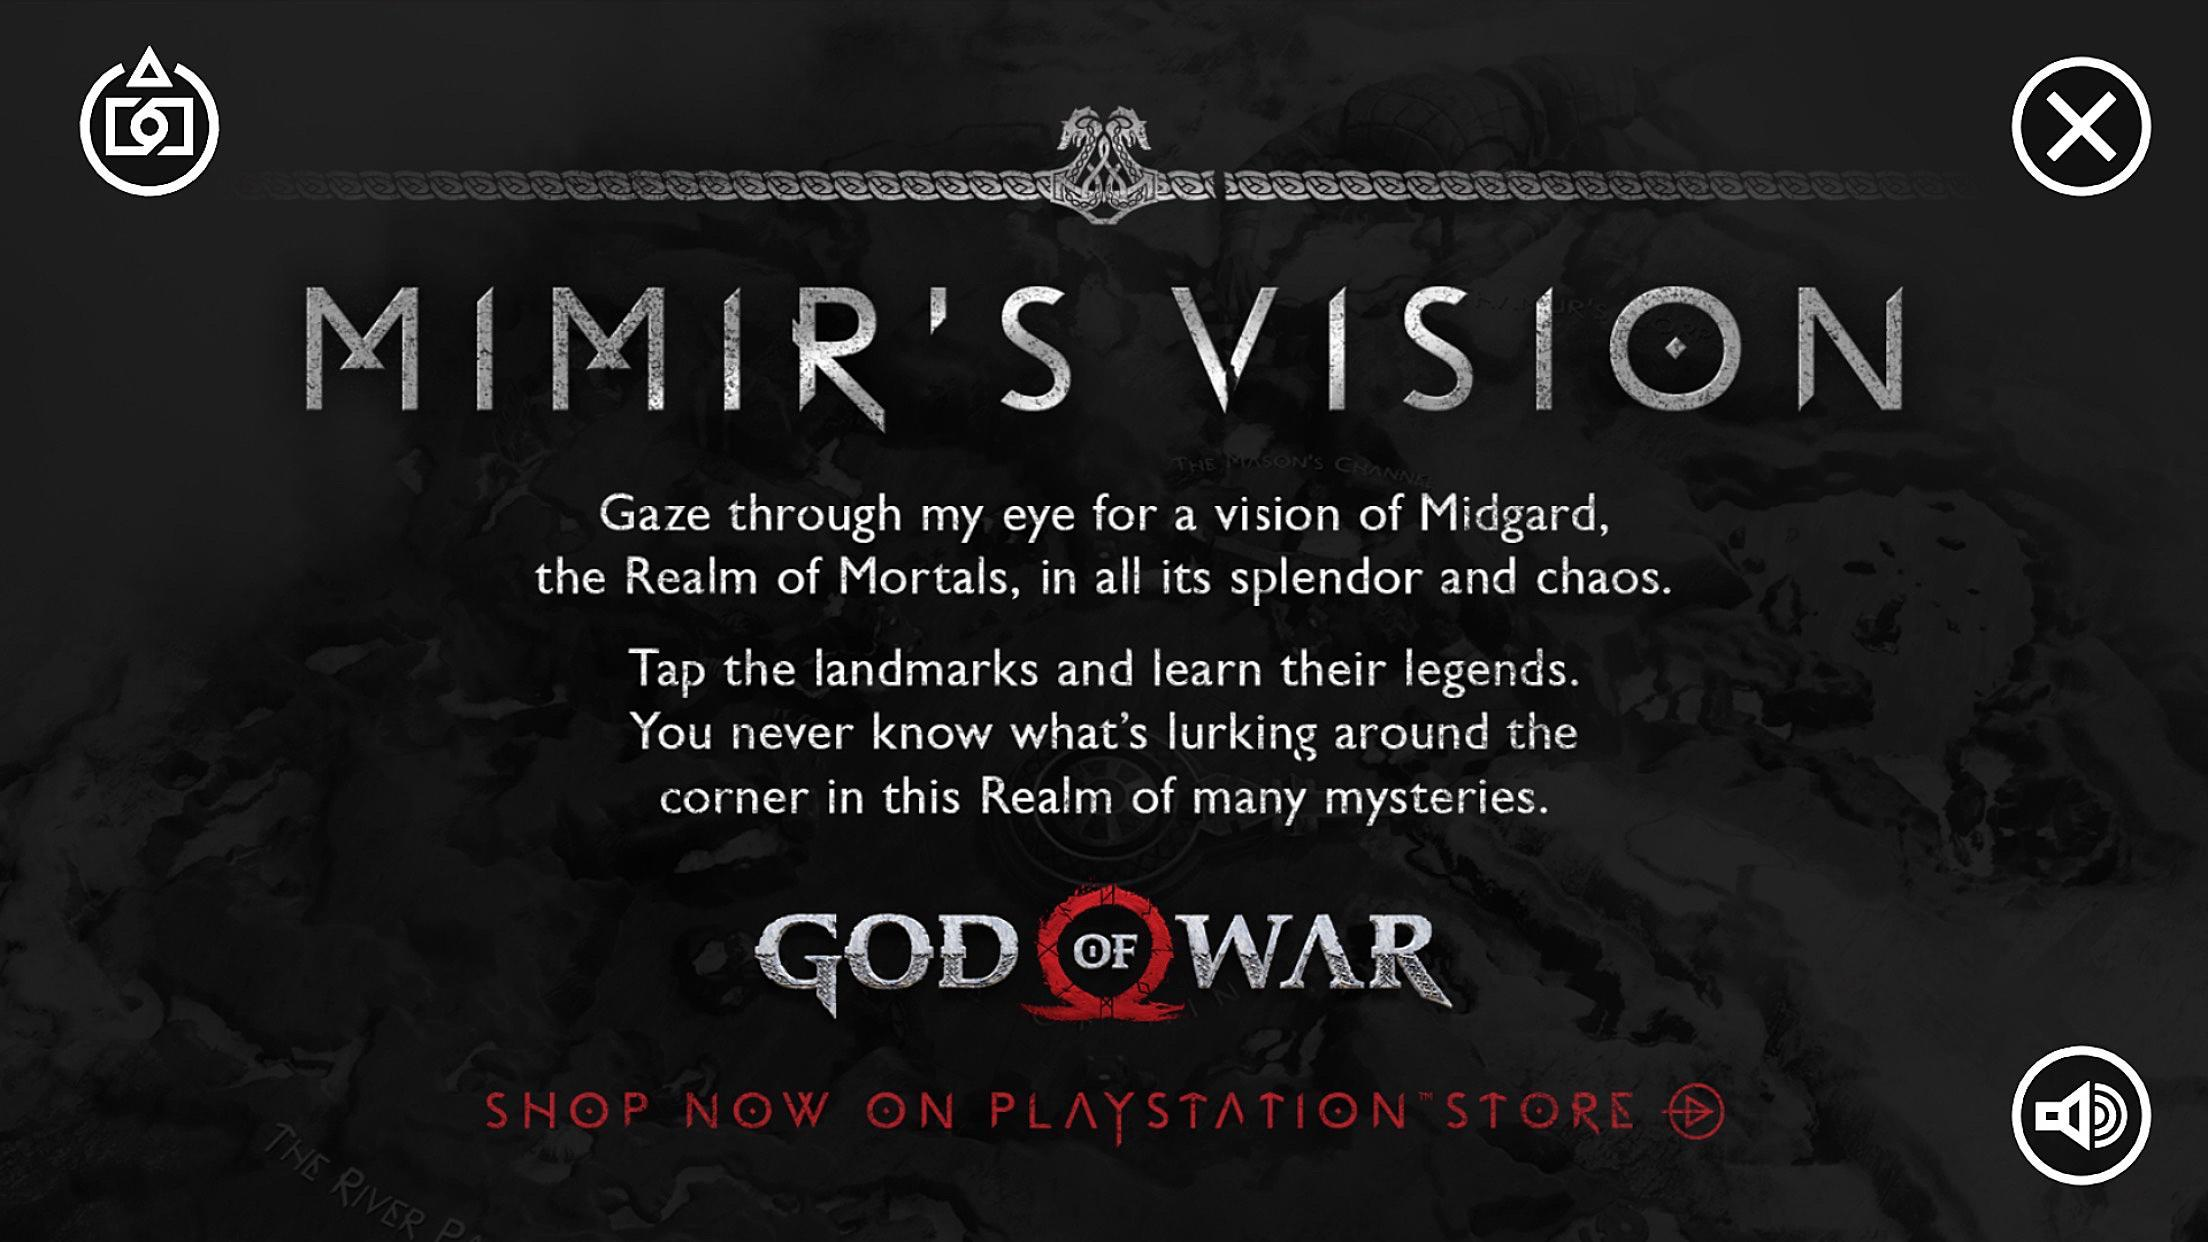 God of War | Mimir's Vision 1.3 Screenshot 9